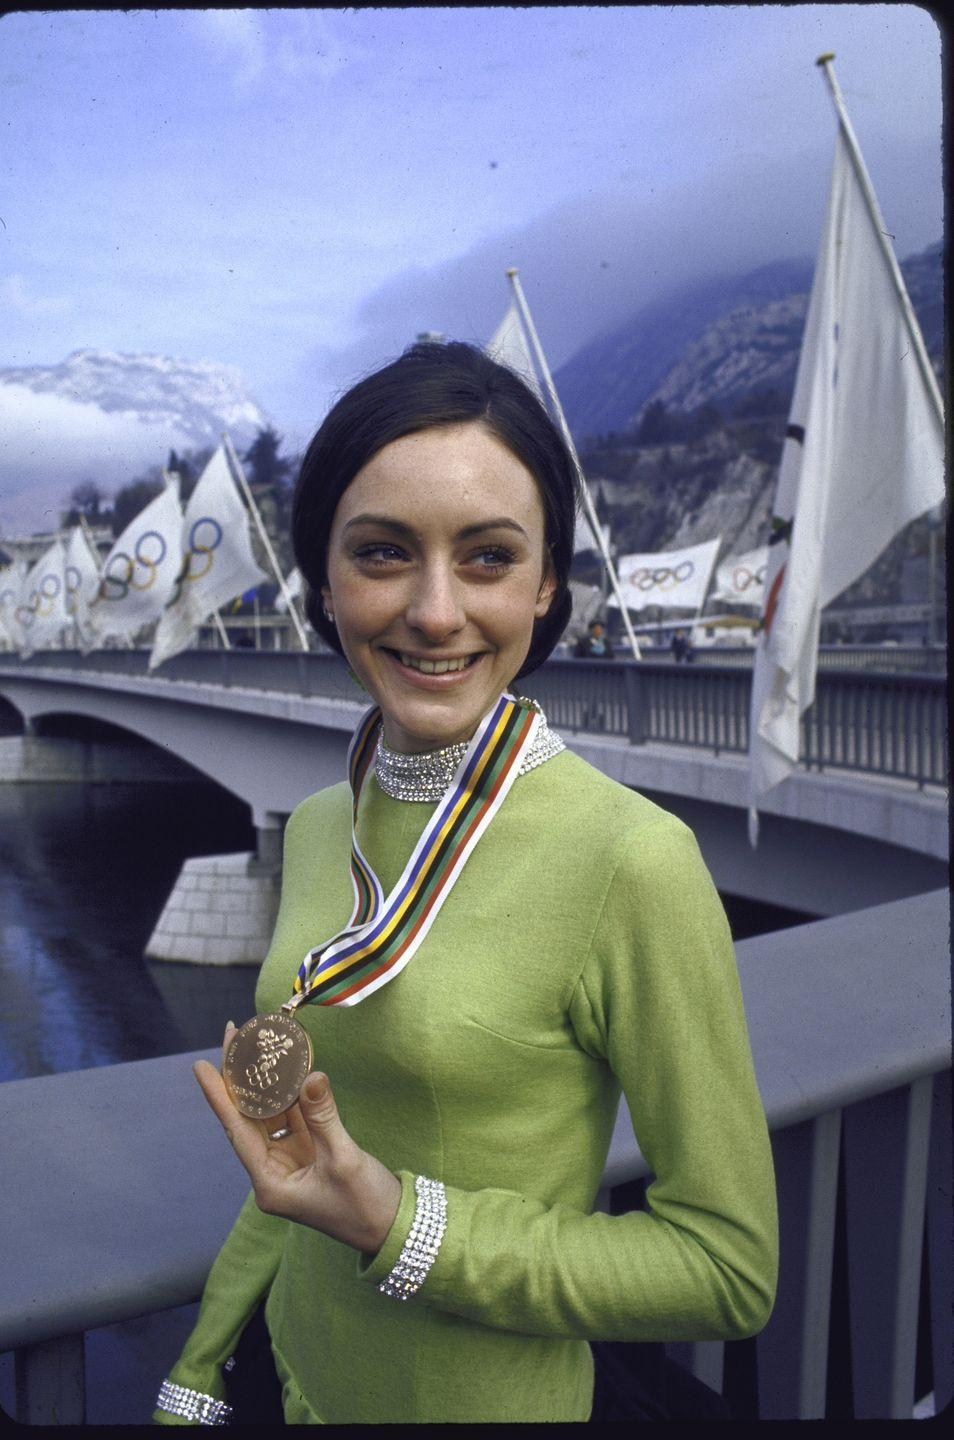 <p>American skater Peggy Fleming took home the gold in Women's Figure Skating during the 1968 winter Olympics in Grenoble. The win was huge for the United States, because it was the first figure skating victory since the tragic plane crash that killed the entire U.S. skating team in 1961. </p>